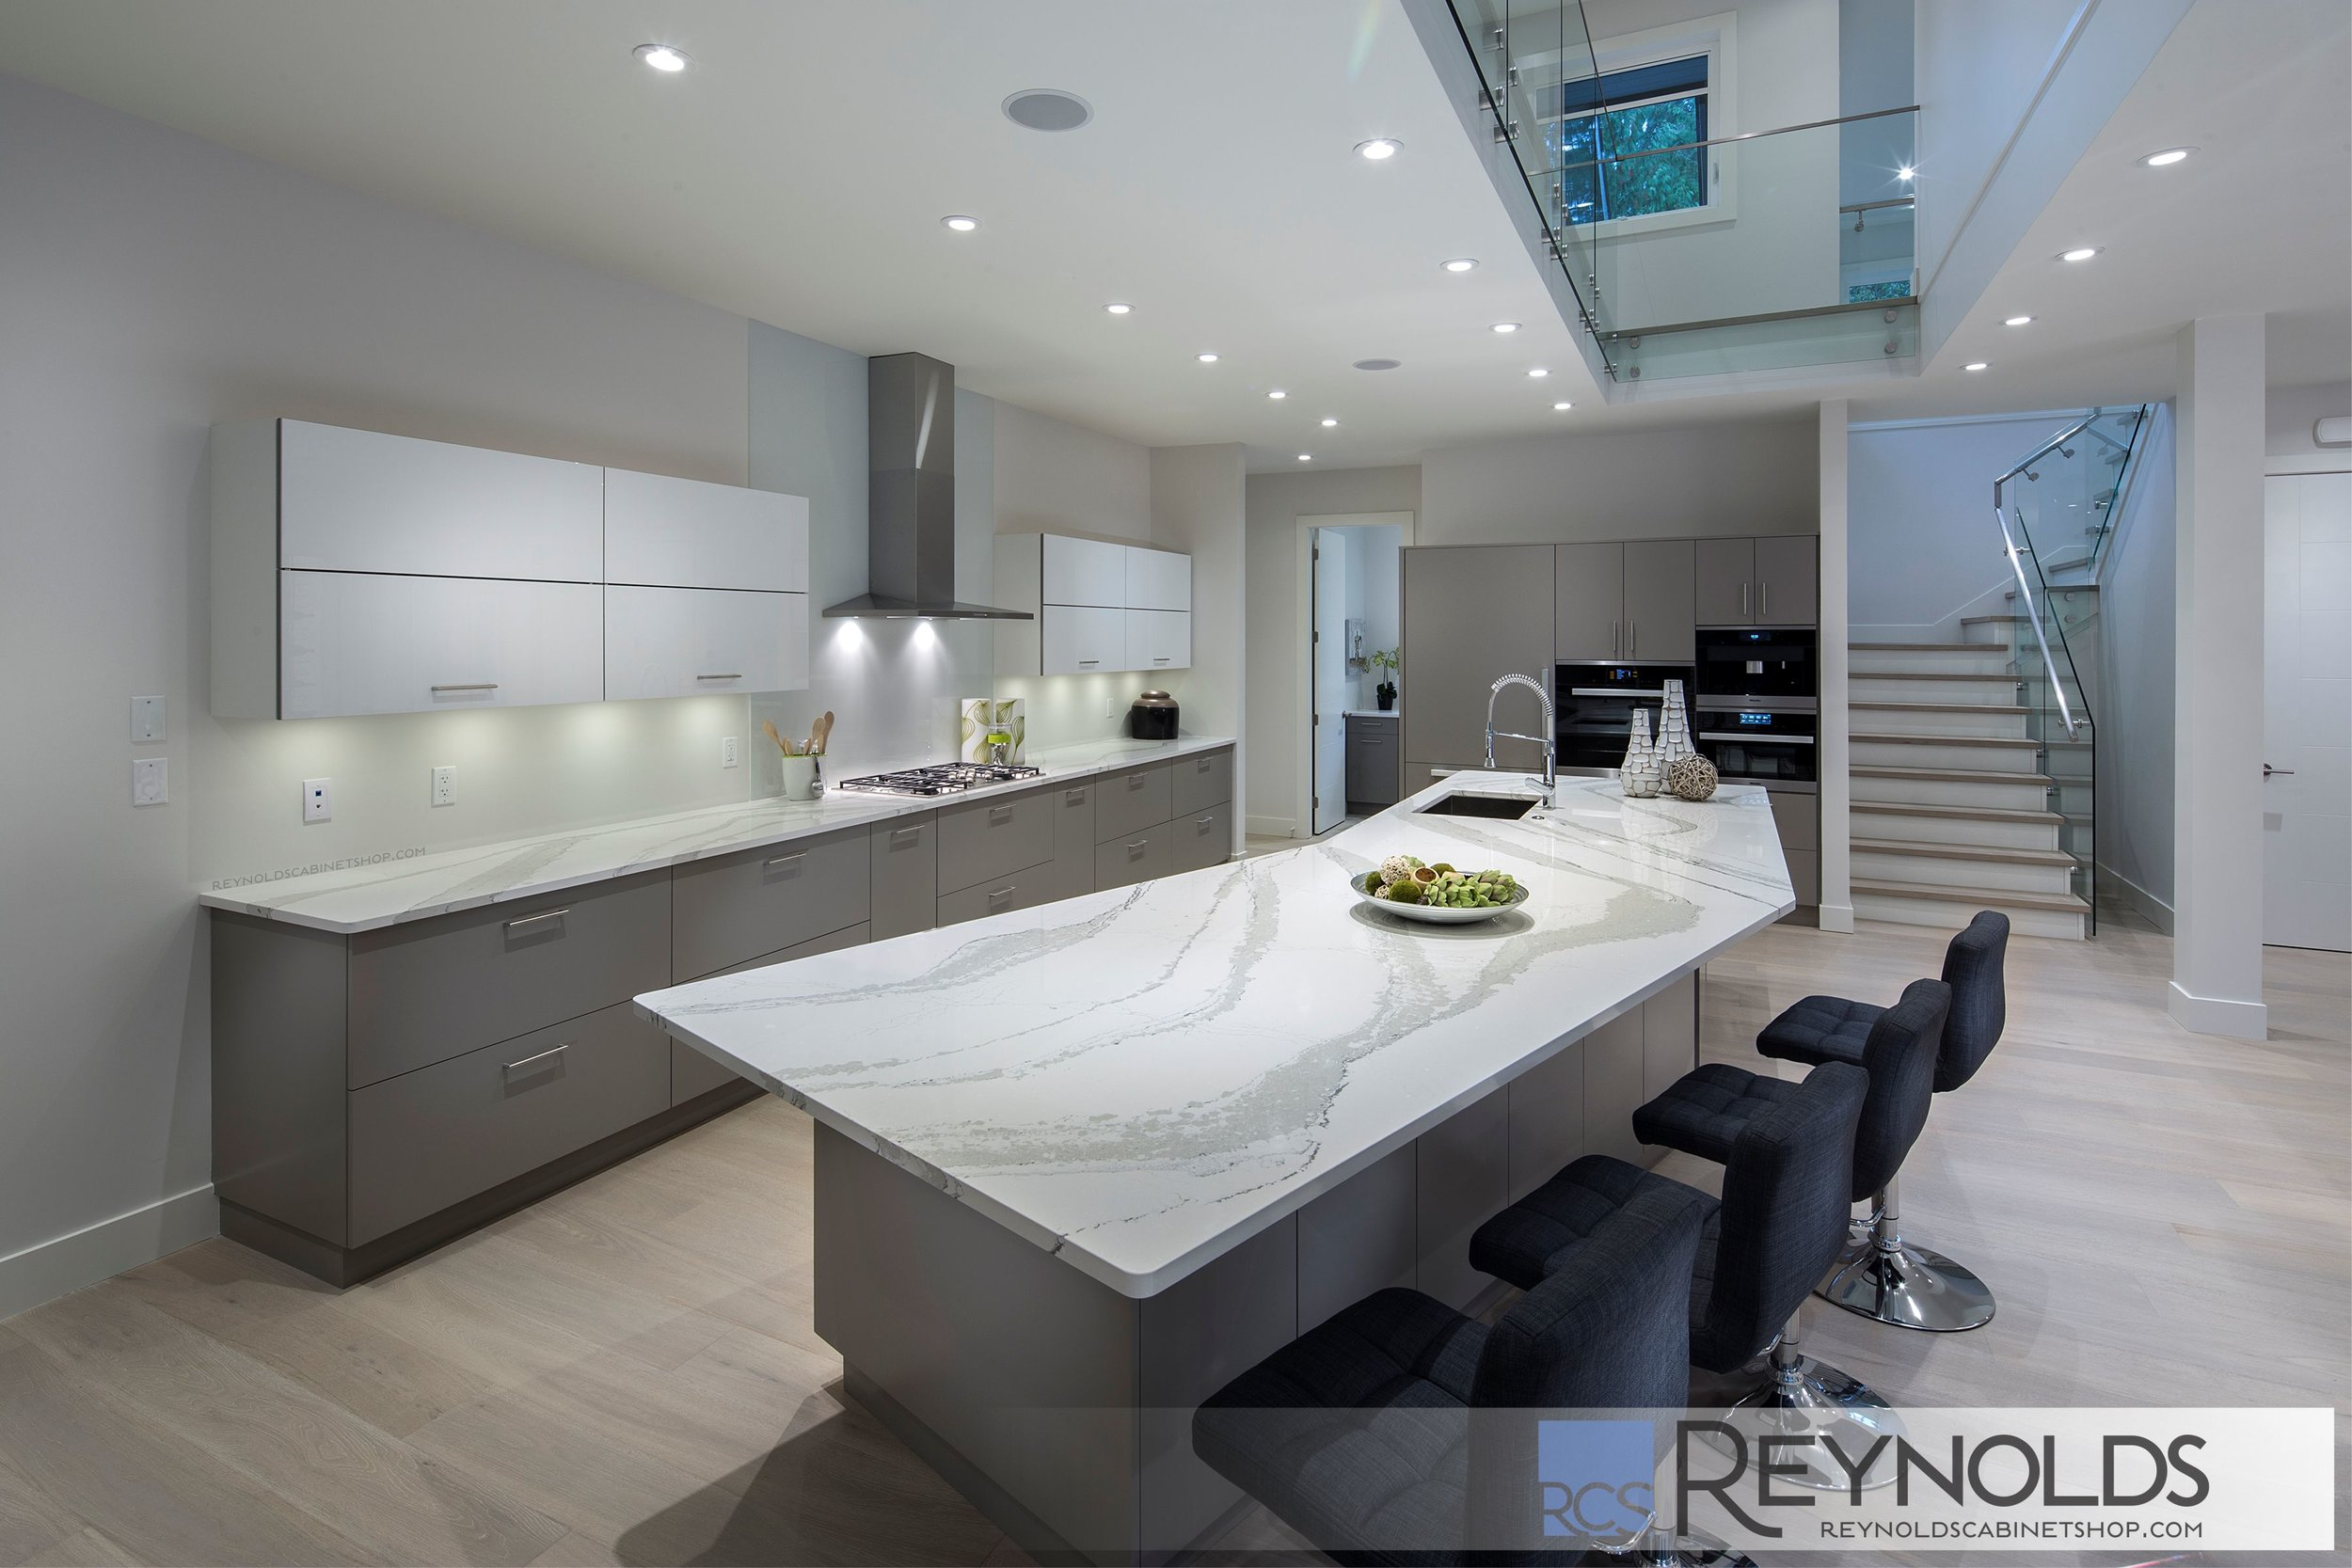 Reynolds Cabinet Shop - Photo Gallery - Millwork & Cabinetry ...